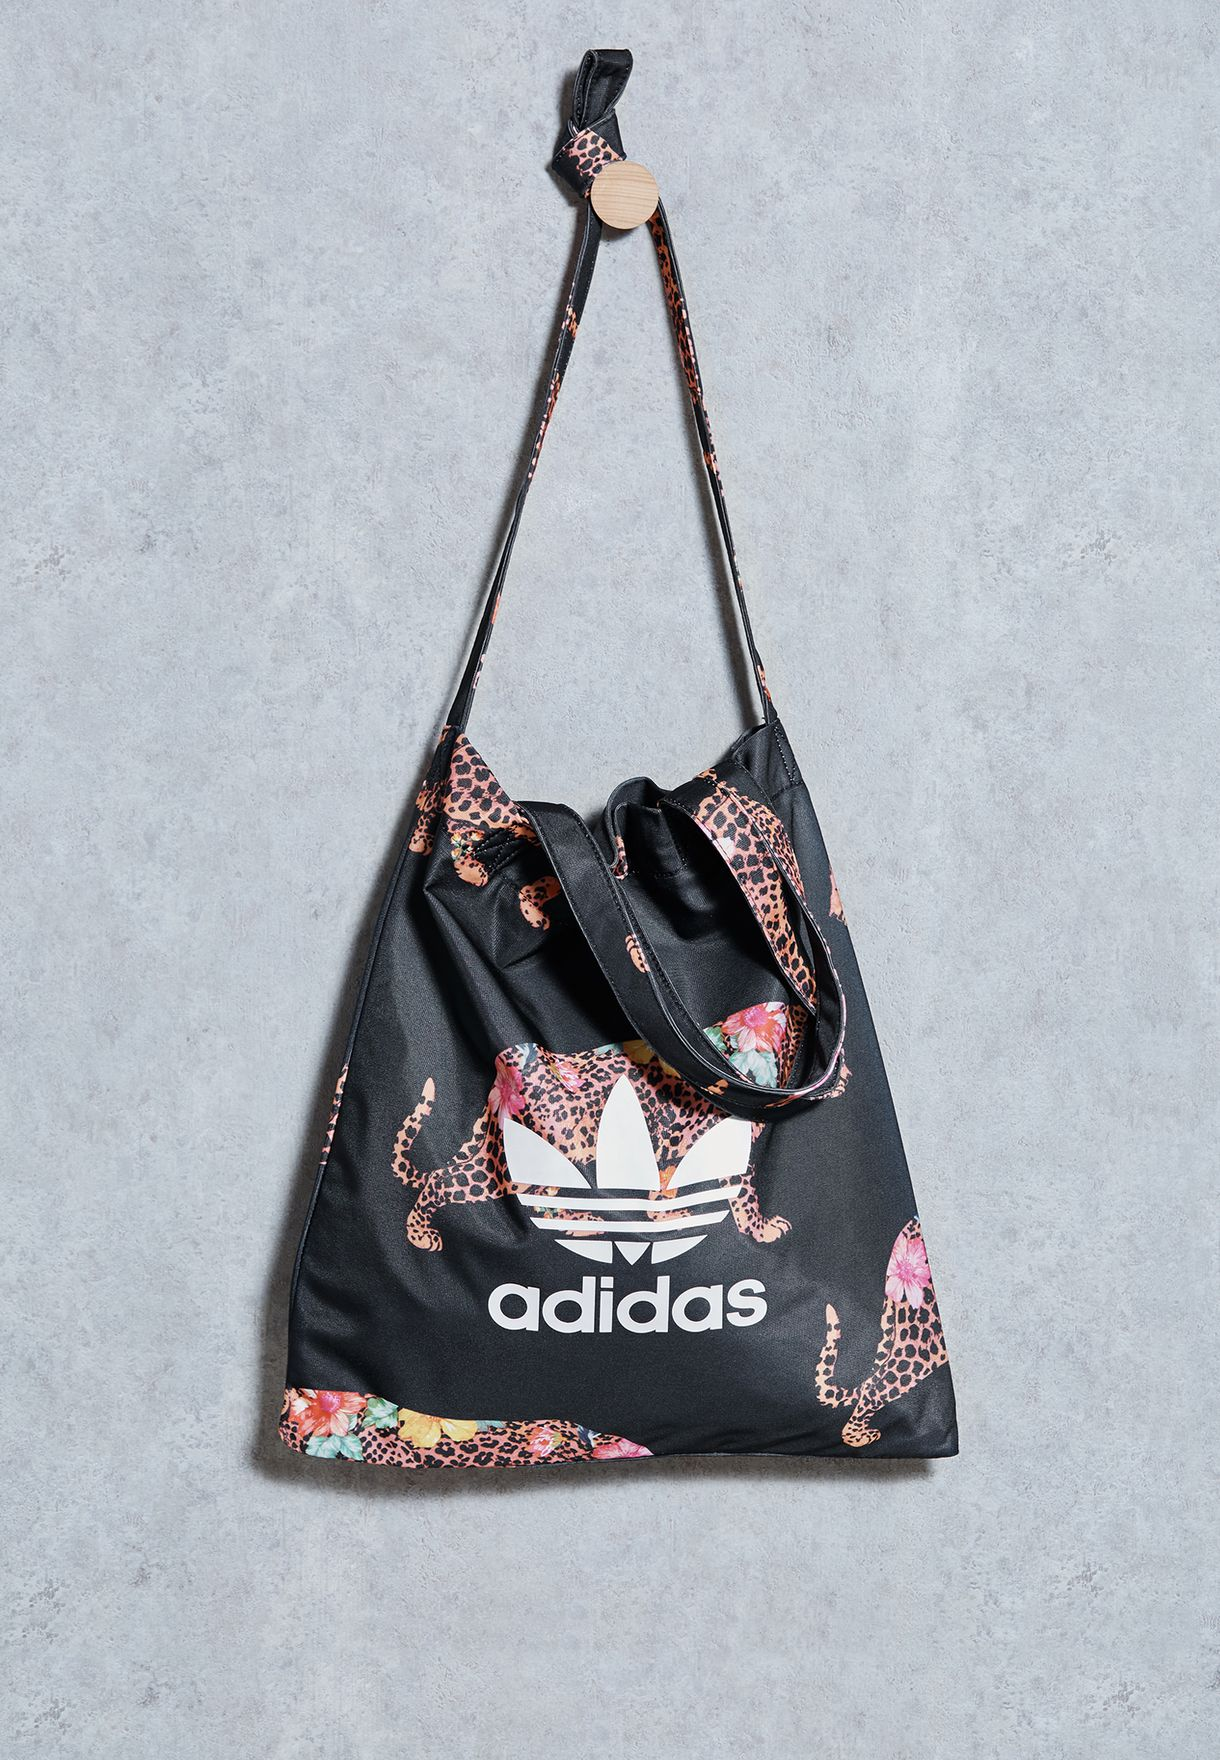 45cc72932c adidas Originals. Oncada Shopper